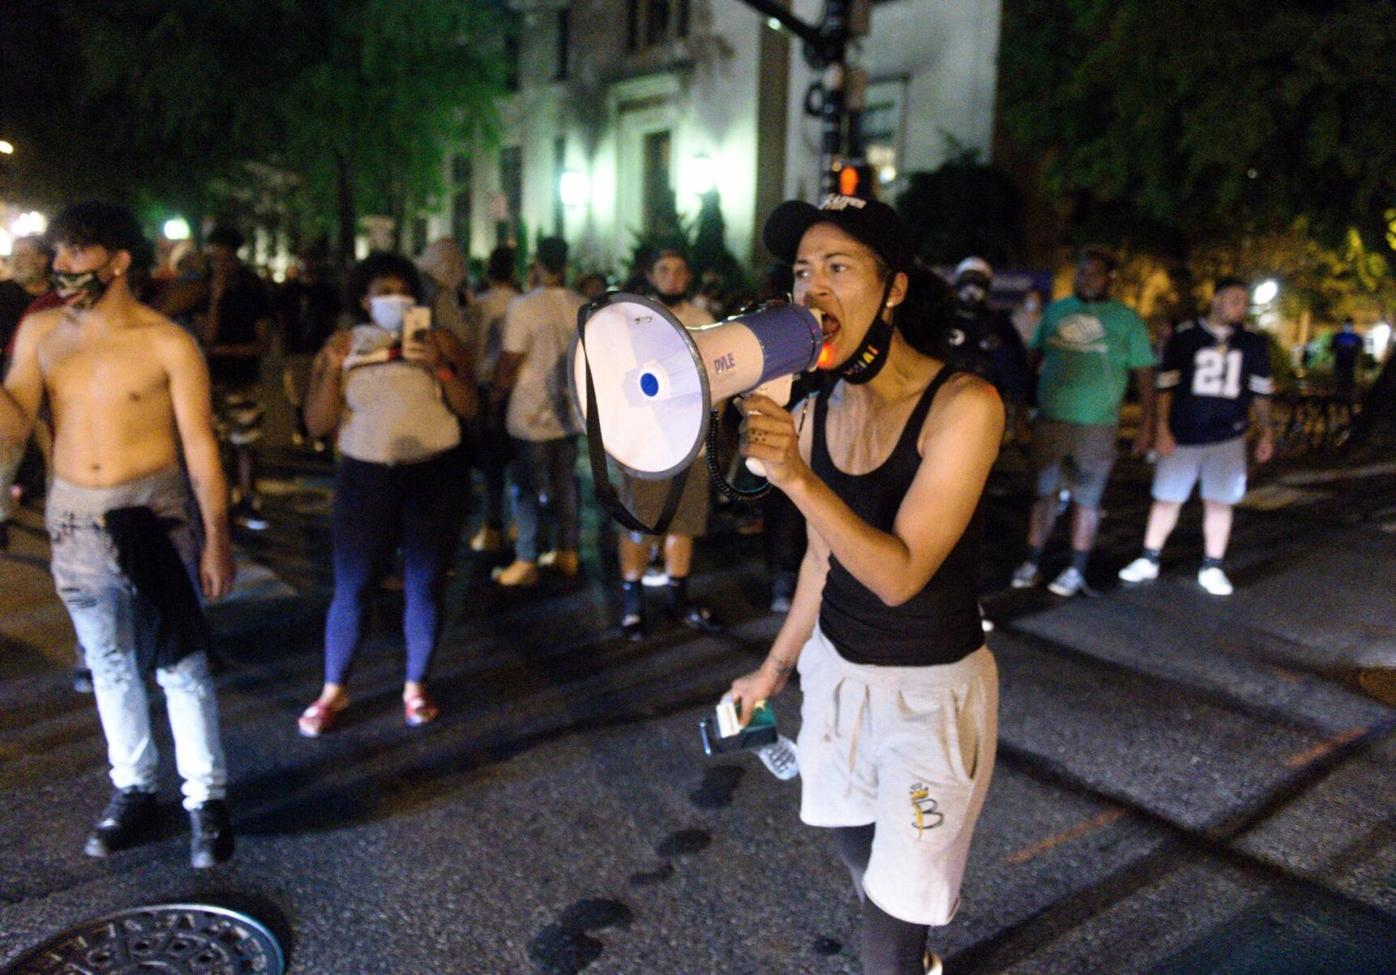 City police shooting protest